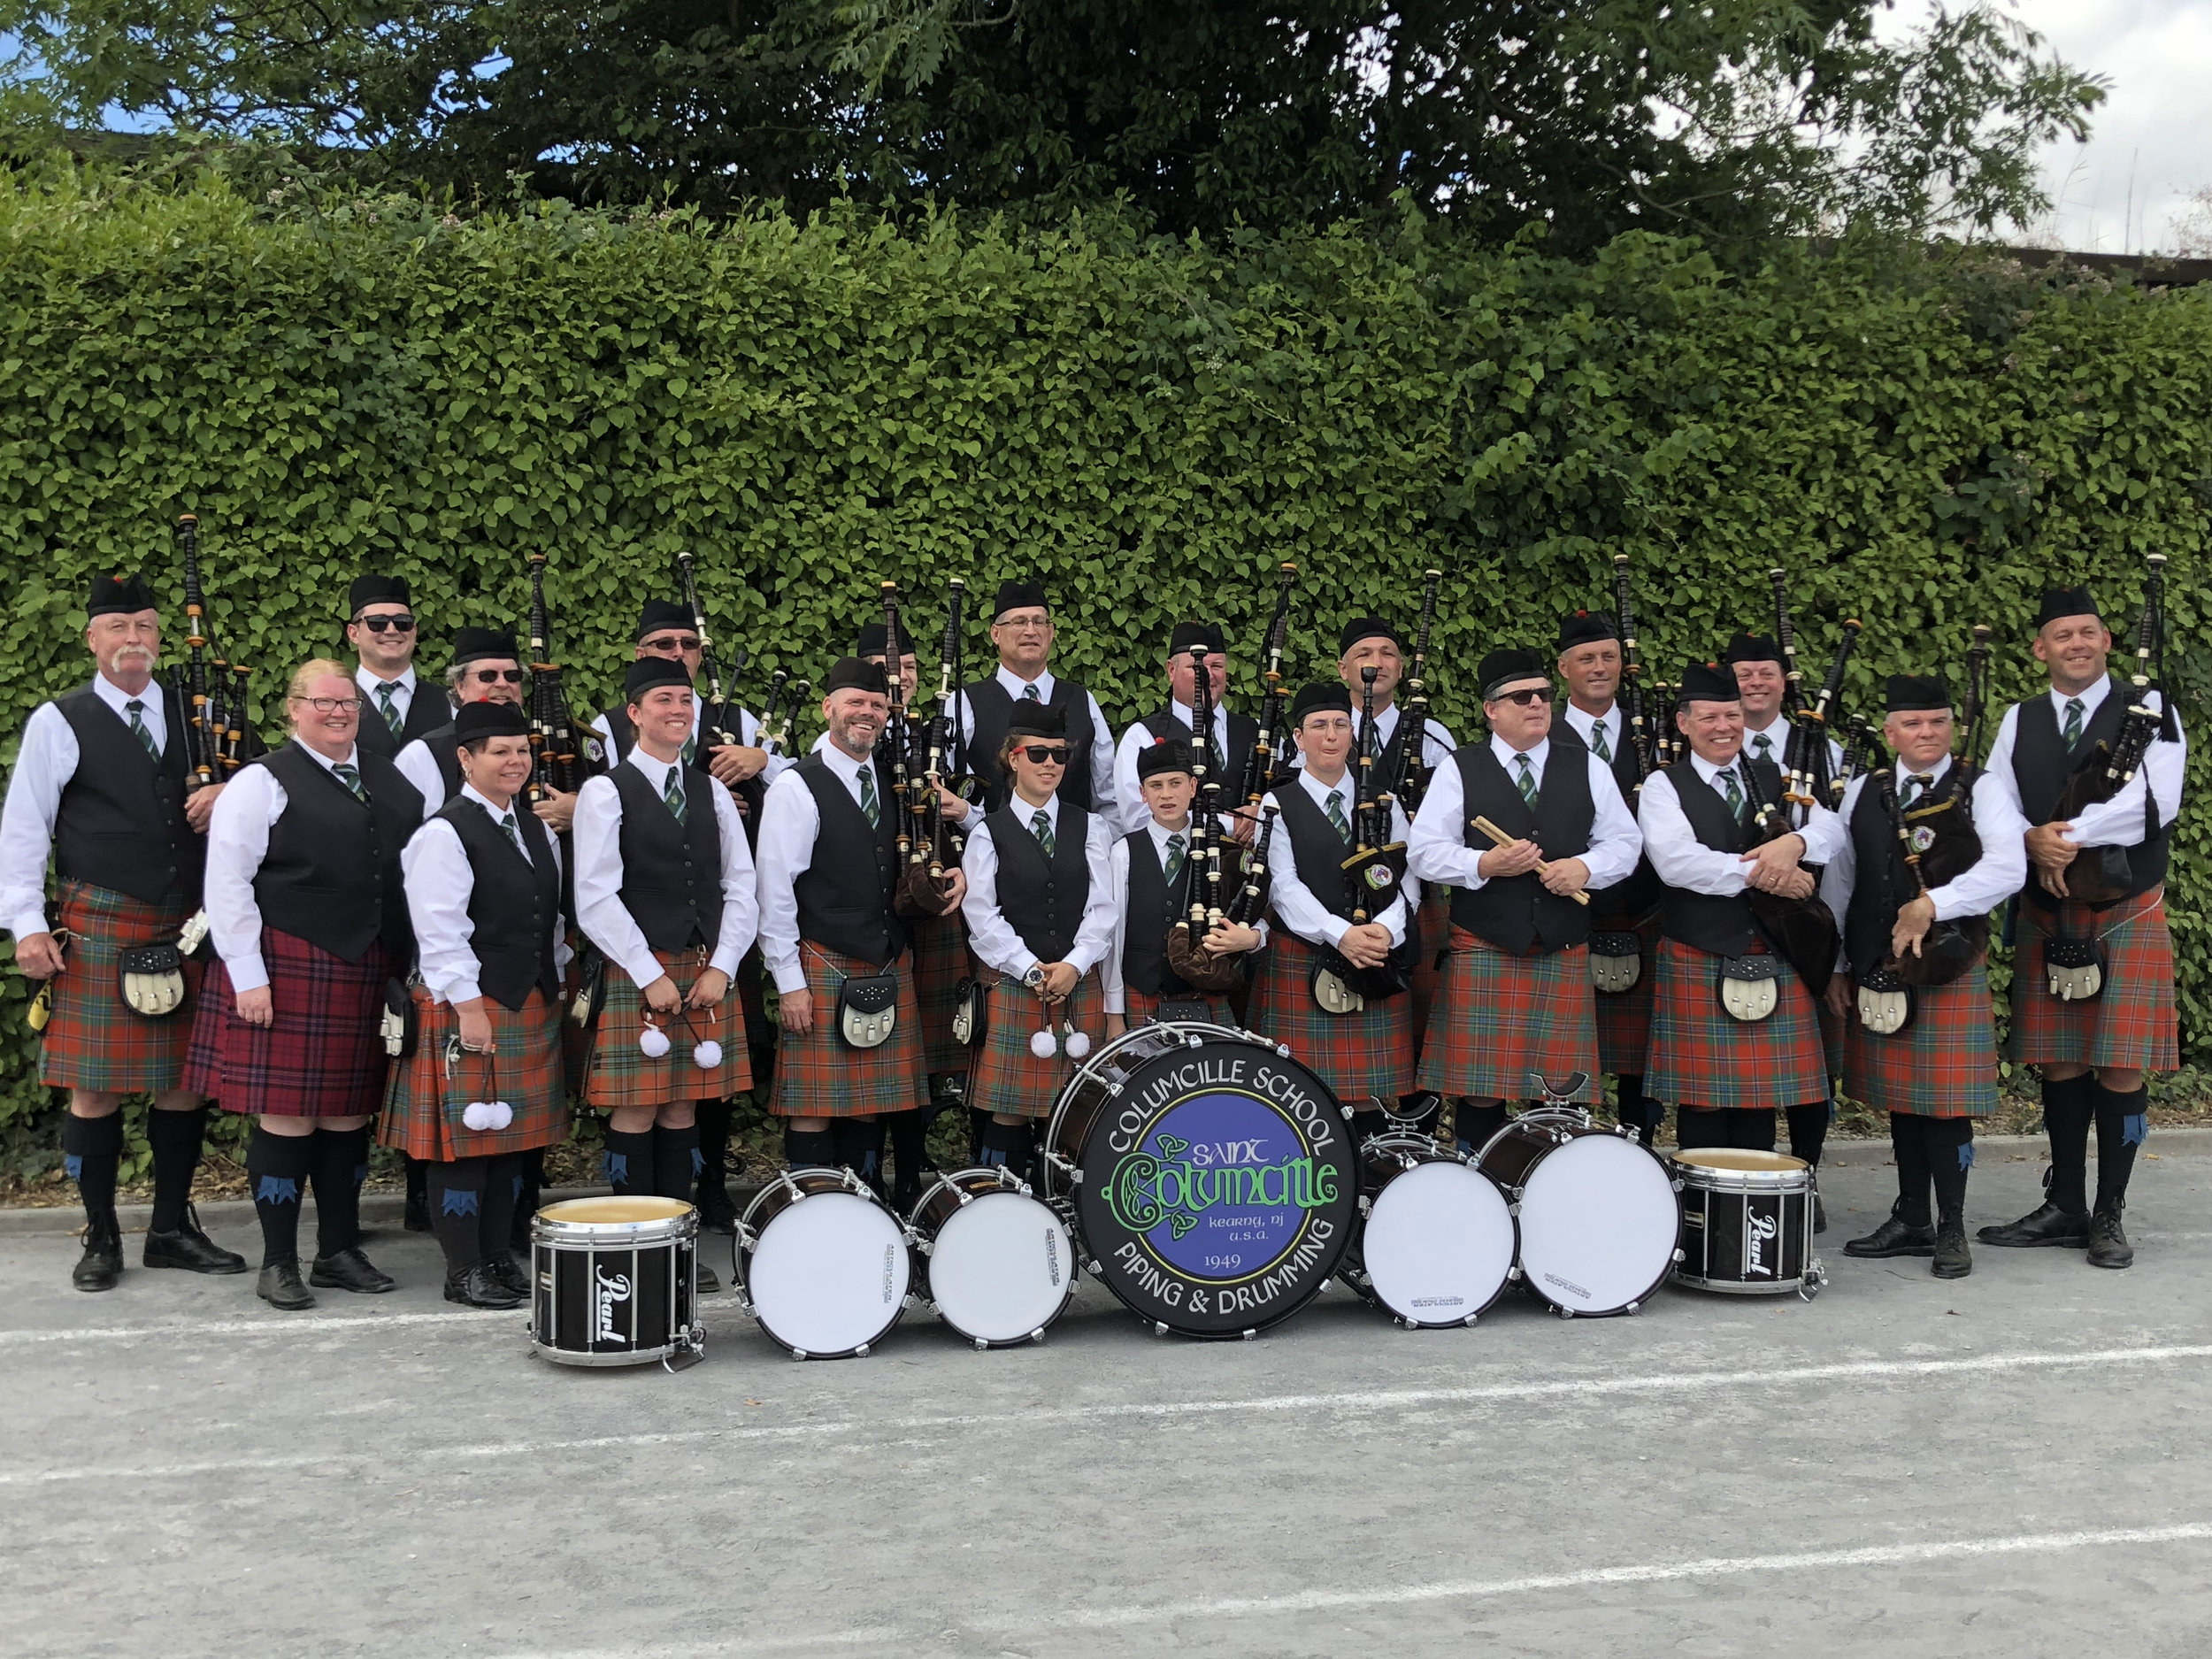 Columcille School of Piping & Drumming in New Ross, Co. Wexford, Ireland.